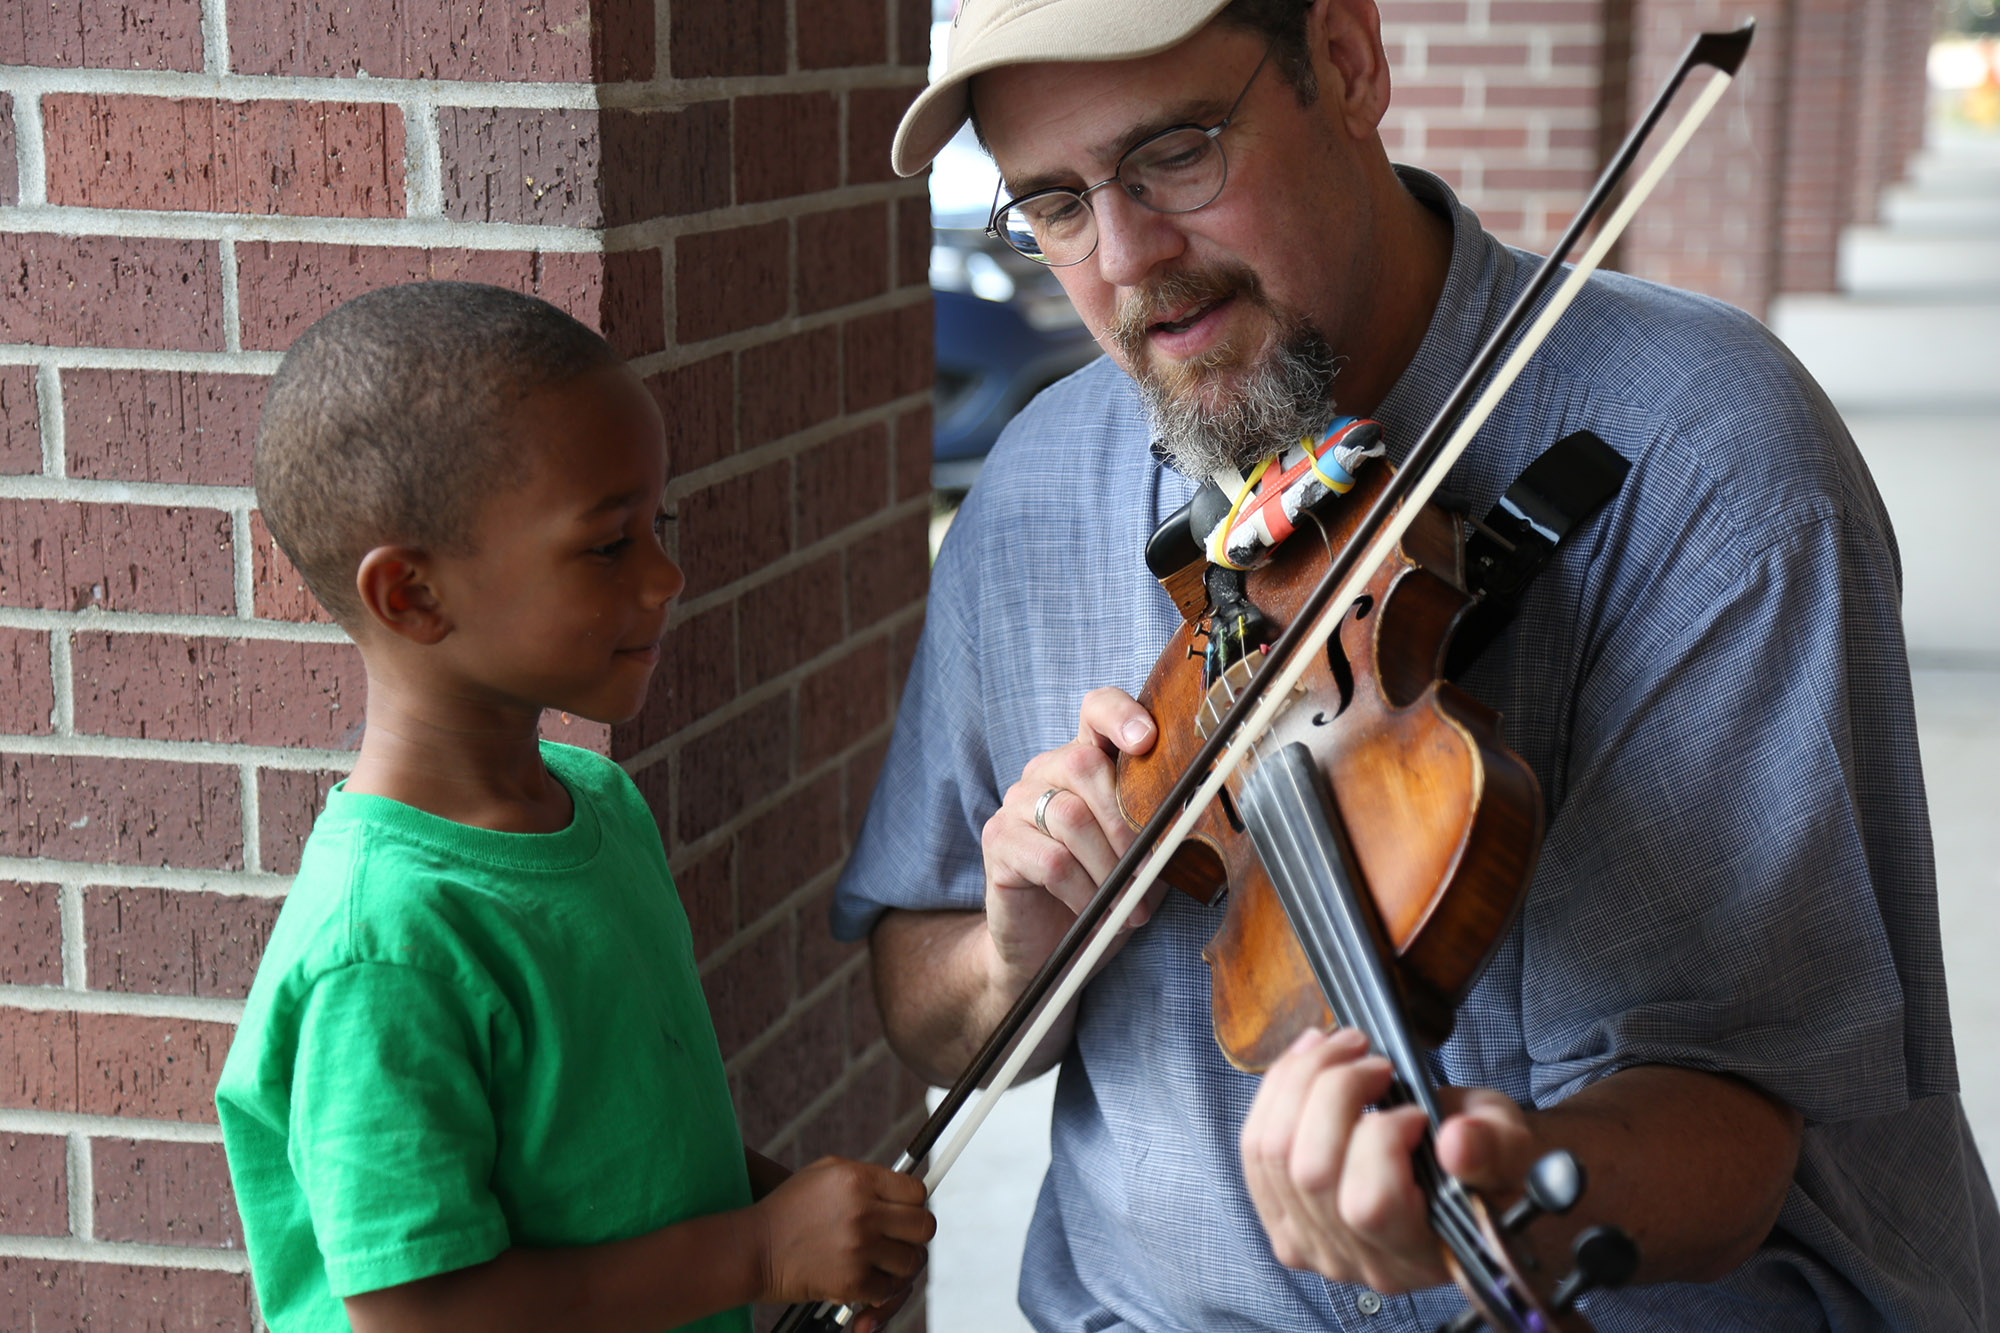 Tom Cunningham explains how he plays the violin at an event that celebrated military families.